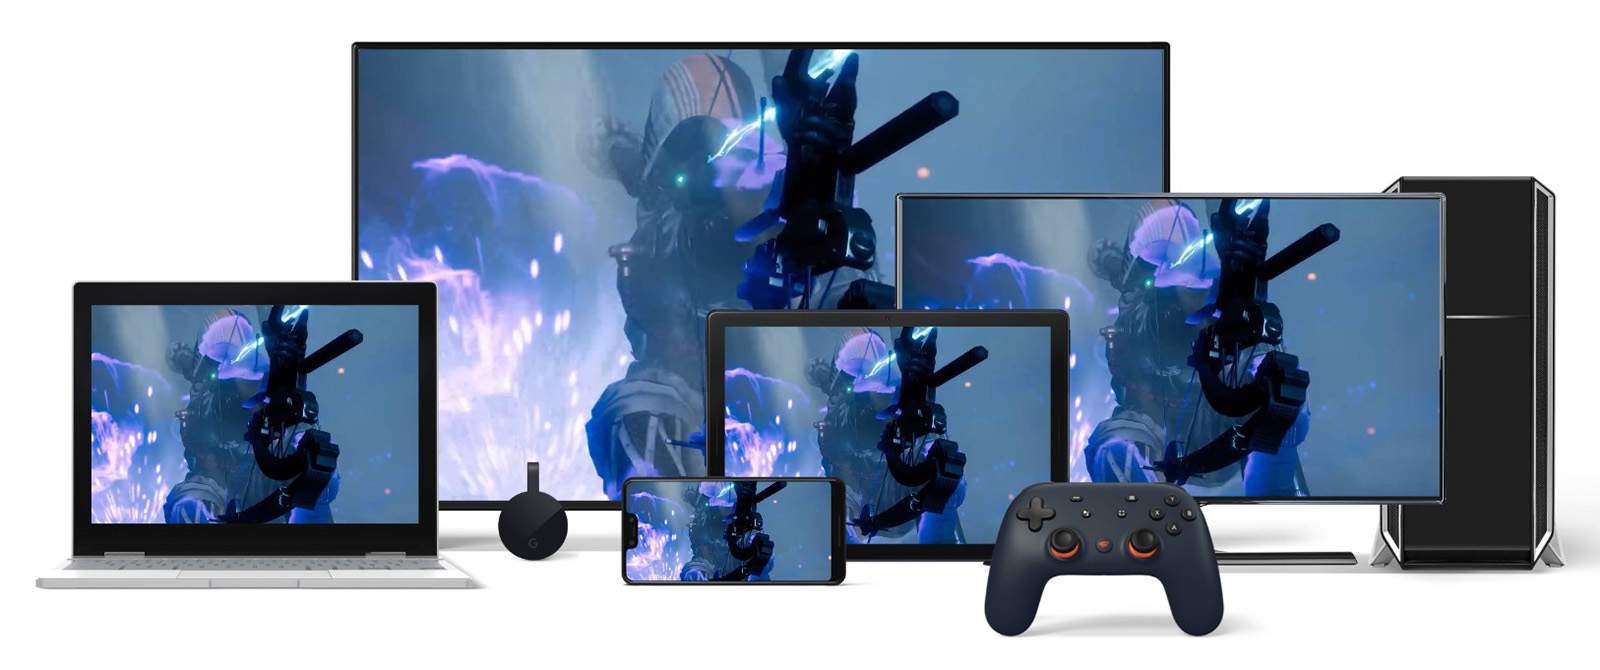 Google Stadia Tidbits Pro Subscription Connection More 9to5google